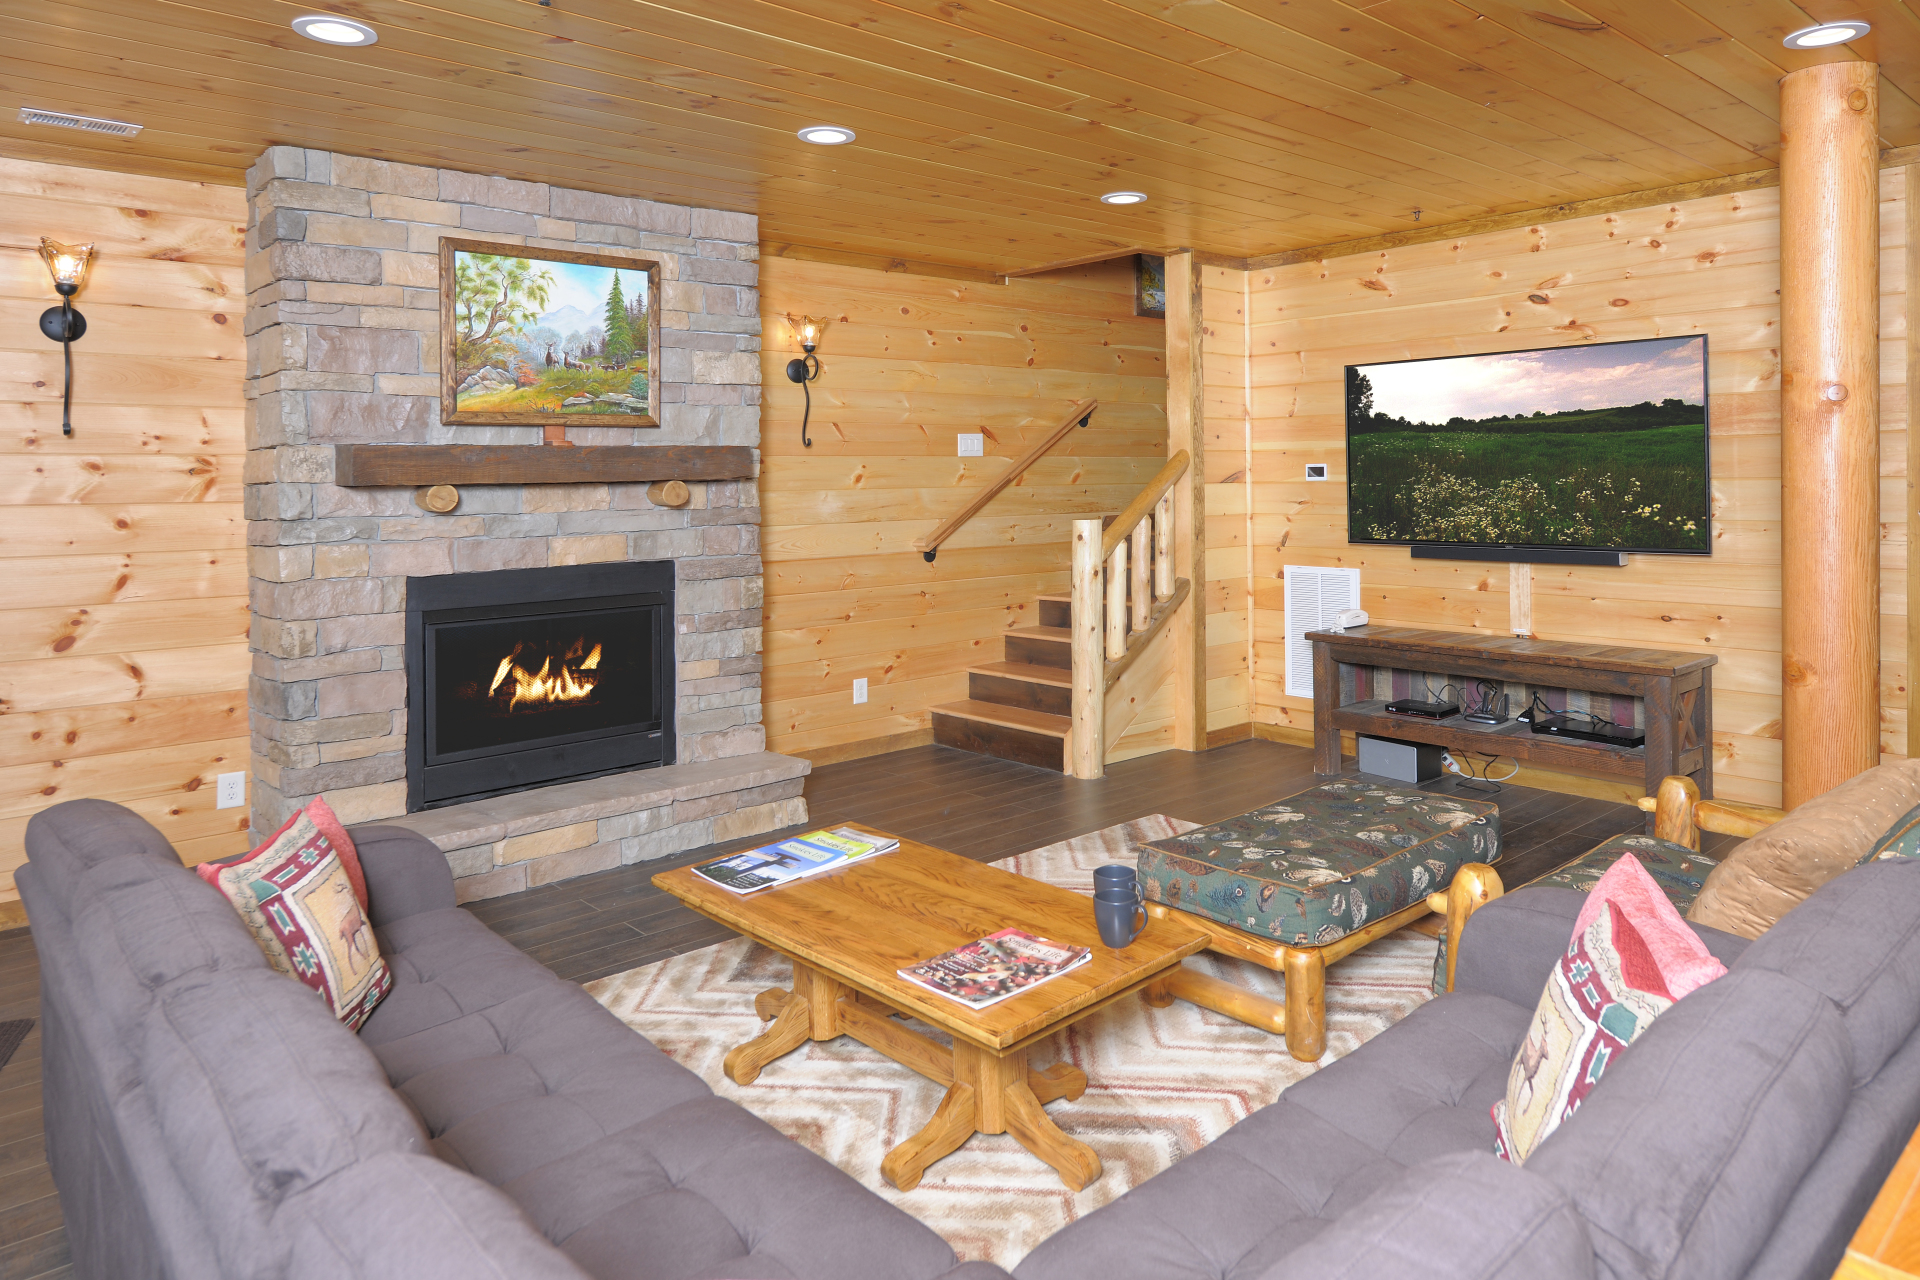 Smoky Mountains Cabin with mancave fireplace  Big screen, arcade and foosball